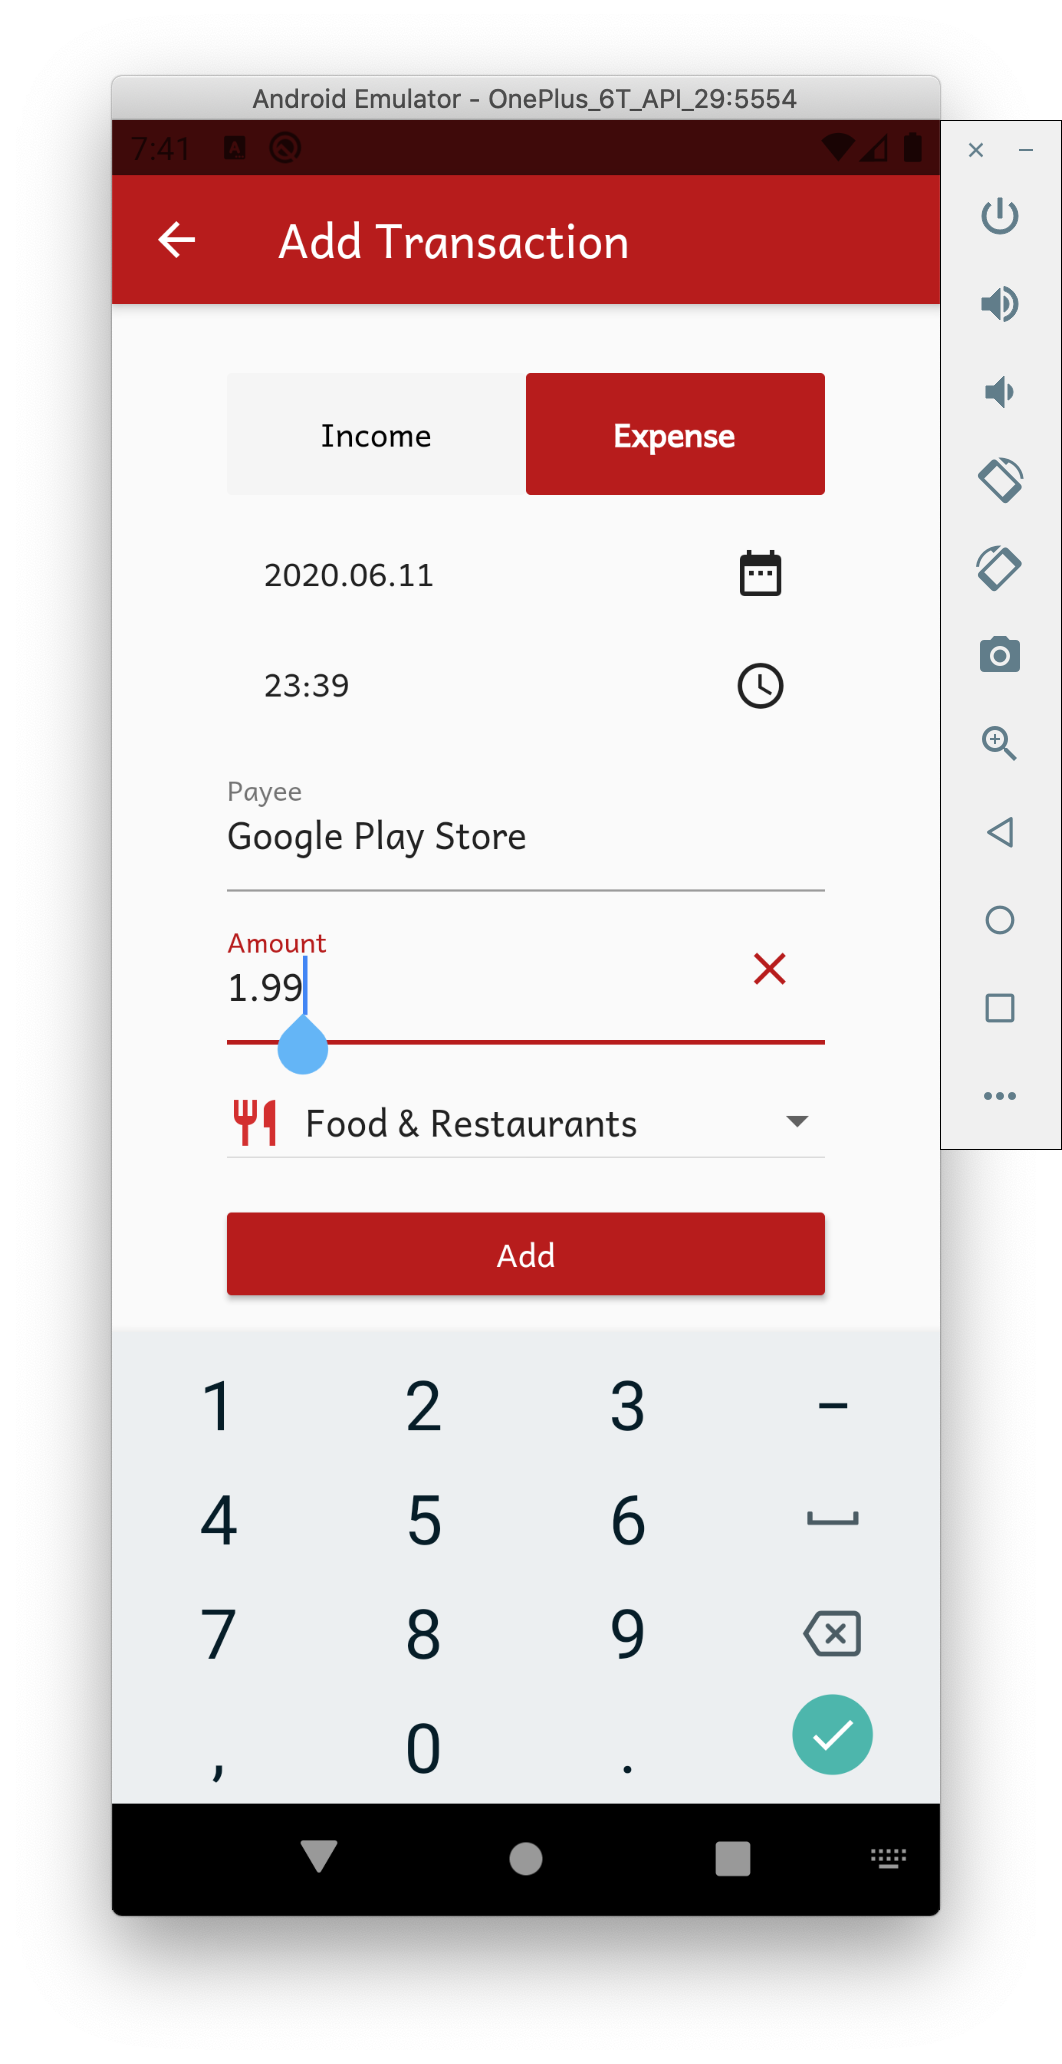 Adding Google Play Store Purchase